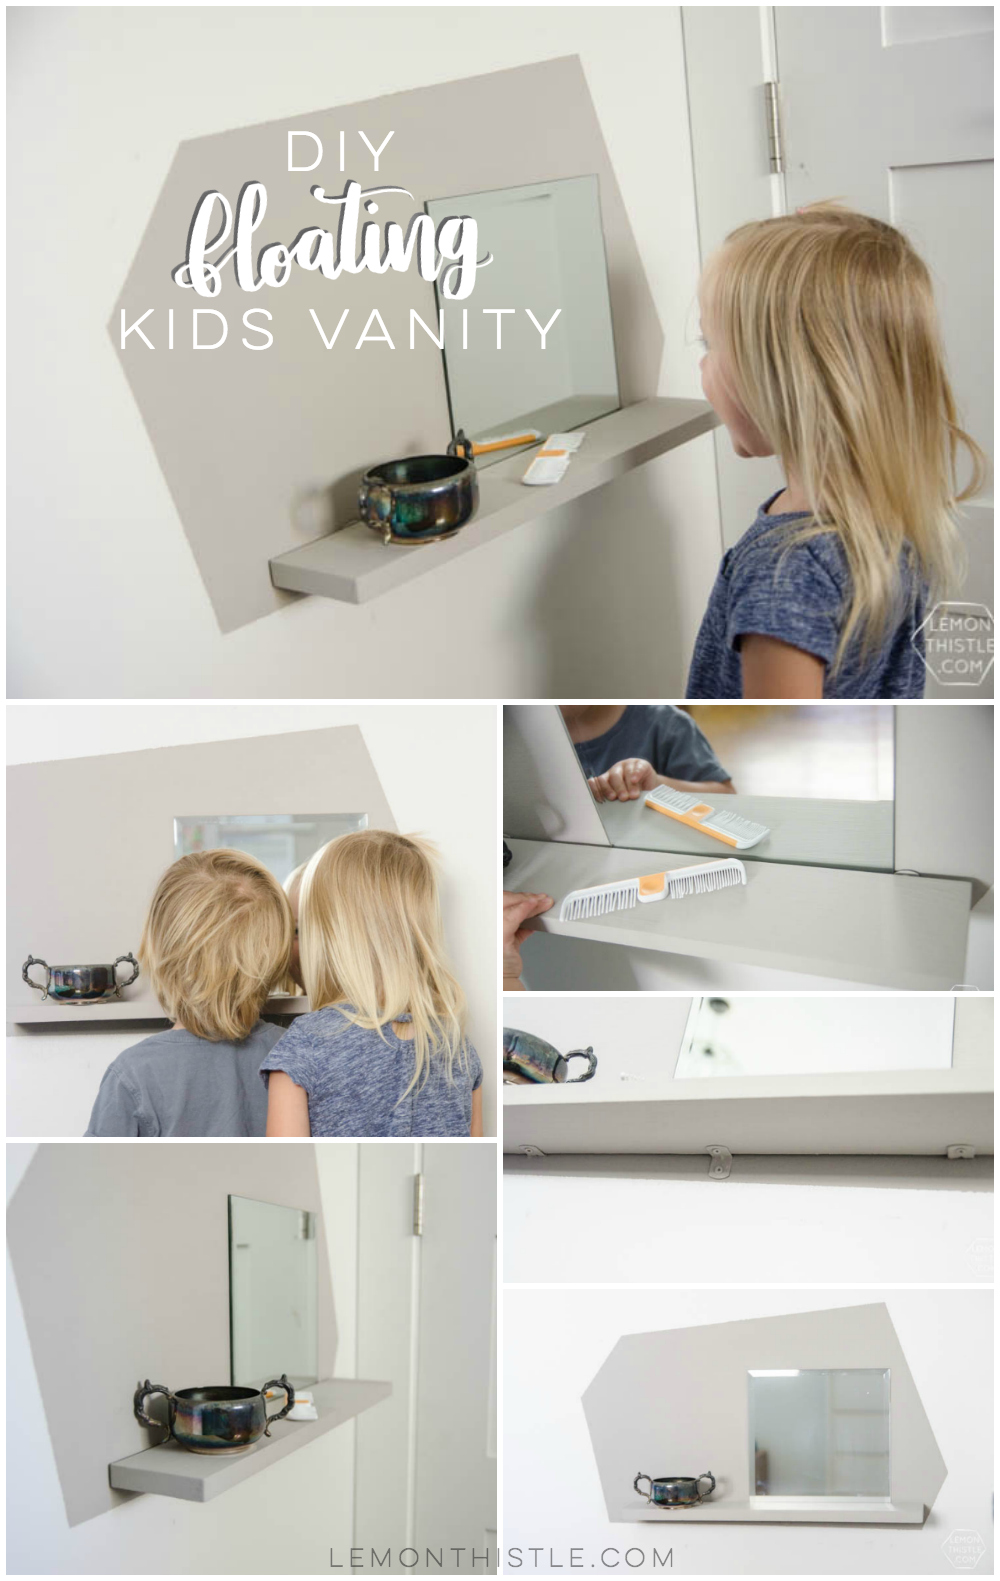 This DIY floating vanity for kids is perfect for tight spaces! It has everything you need but takes up no floor space.